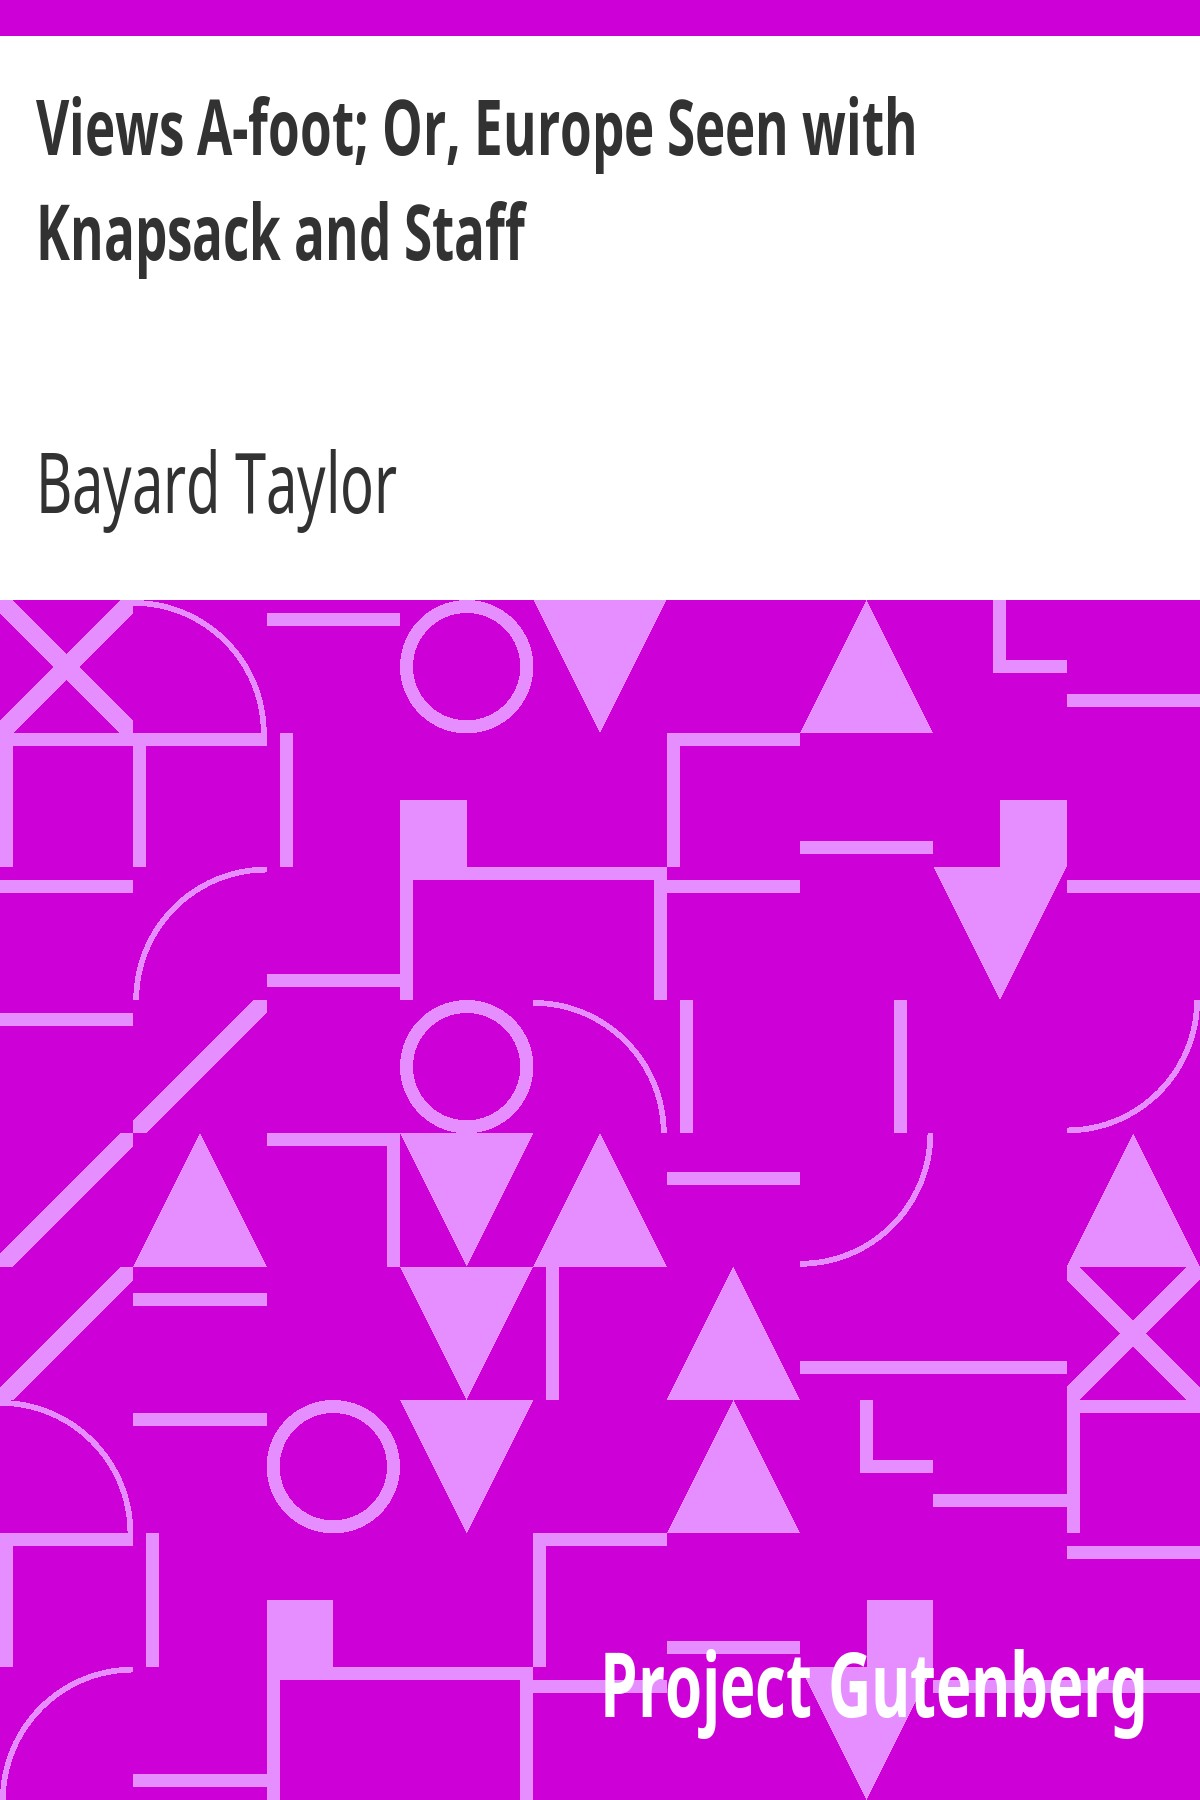 Bayard Taylor Views A-foot; Or, Europe Seen with Knapsack and Staff